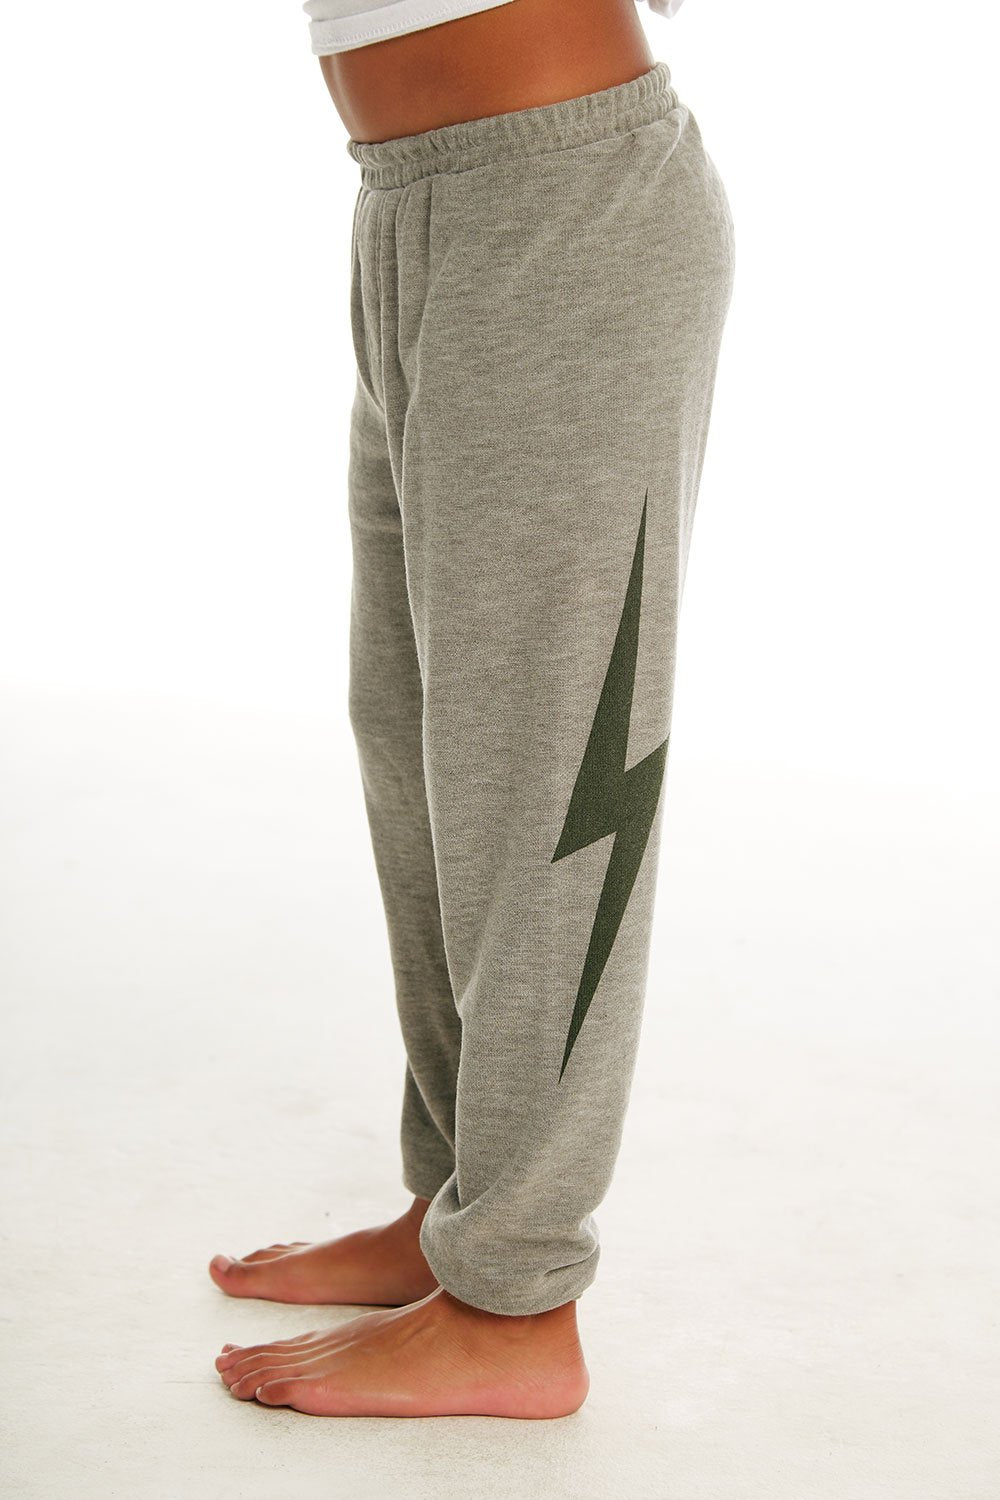 Chaser Kids Chill Boys Cozy Knit Jogger No Side Seam - Heather Grey - Ella J Boutique